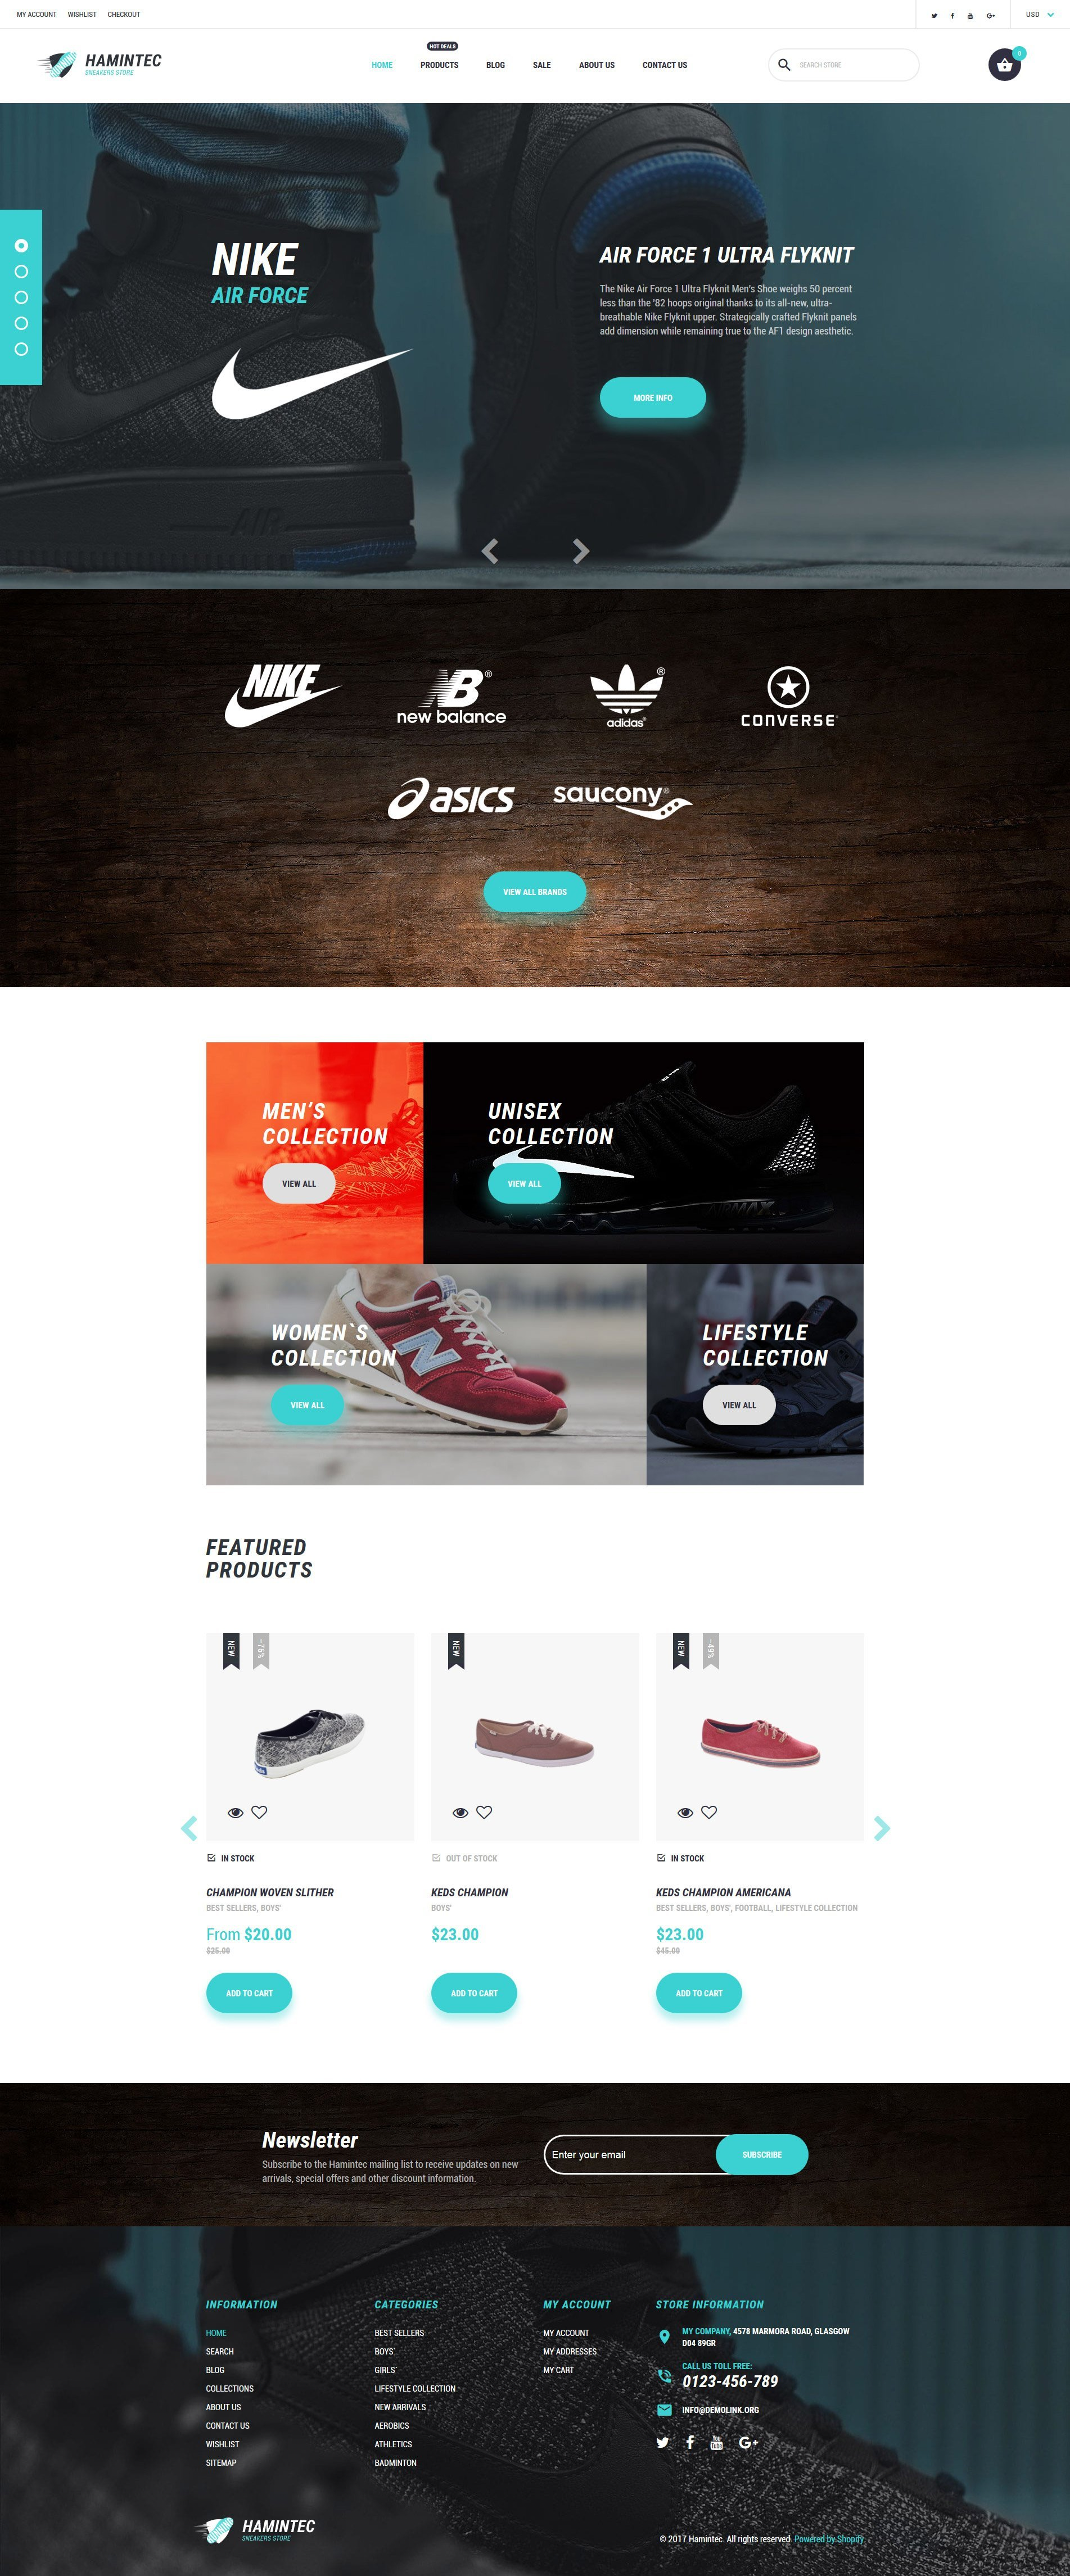 Hamintec - Luxury Quality Sneakers Store Shopify Theme - screenshot